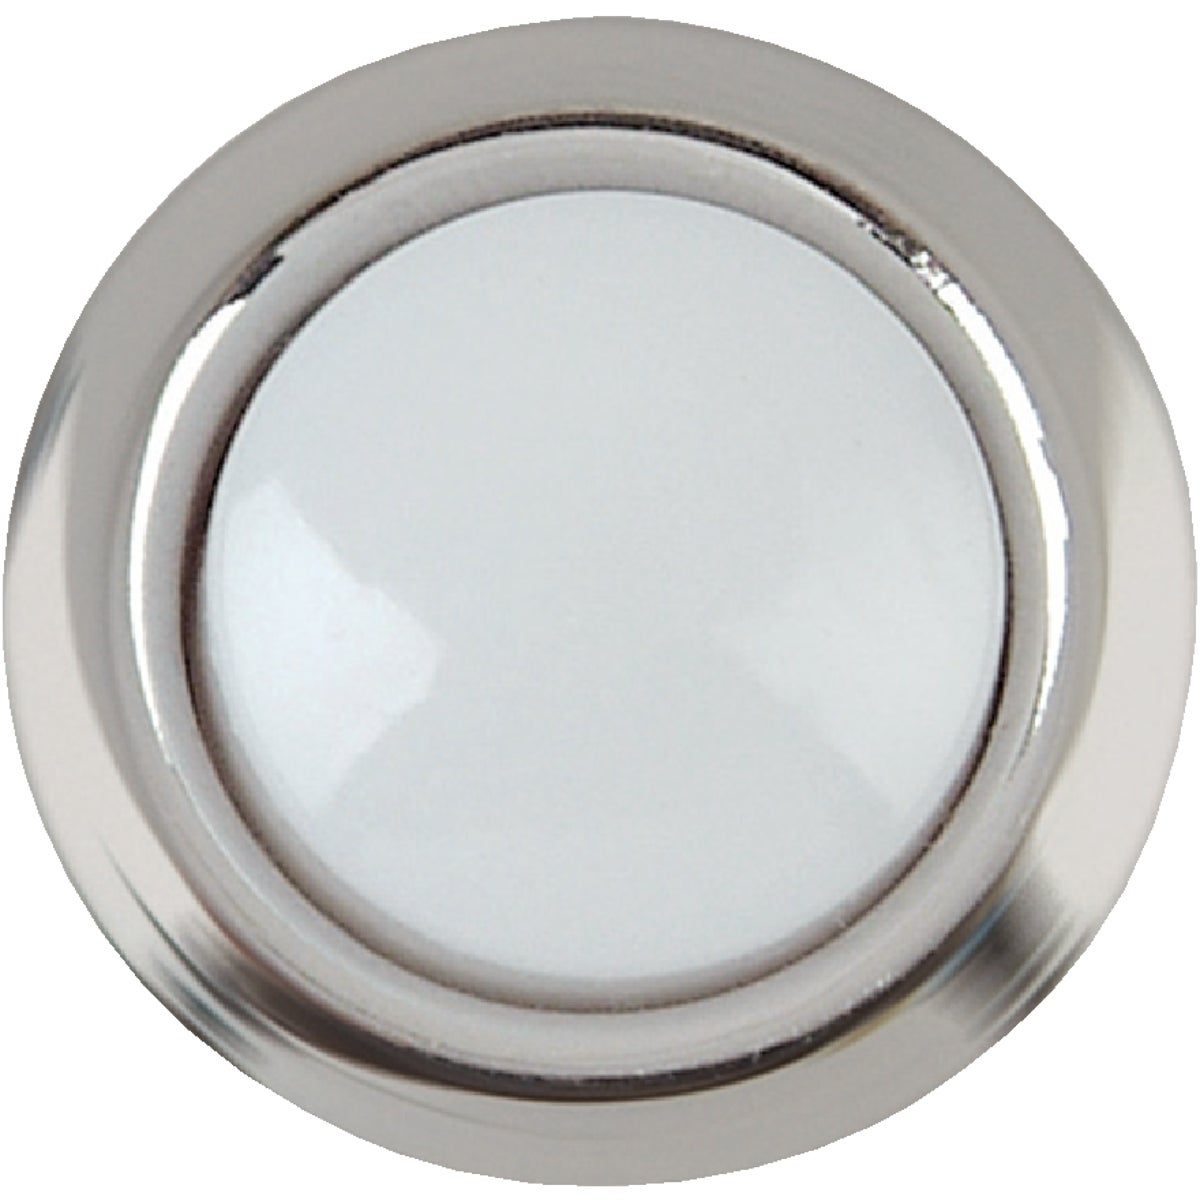 SLVR LIGHTED PUSH-BUTTON - DH1201L by Thomas & Betts